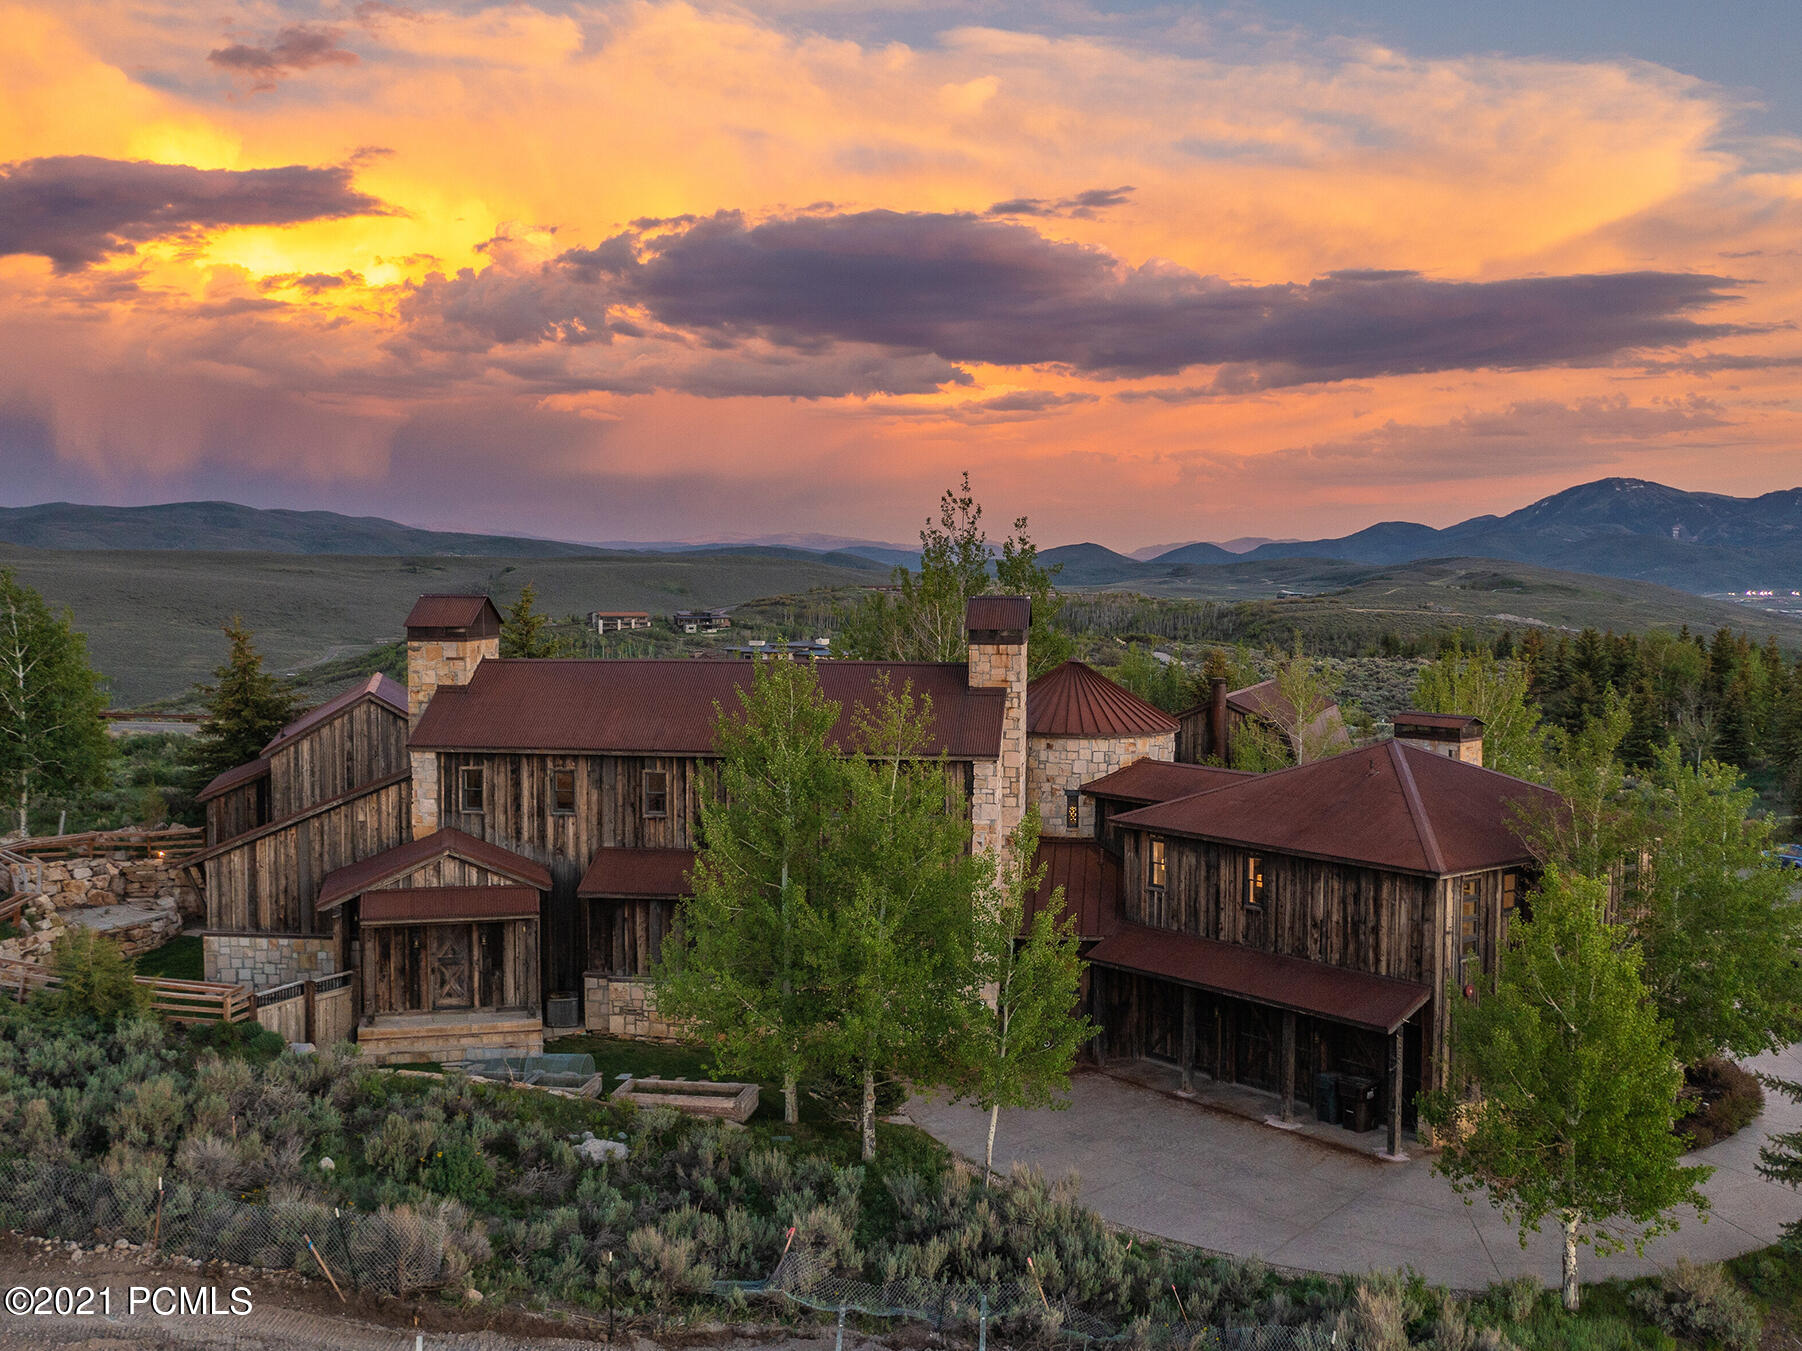 This timeless, stunning home was designed by Clive Bridgwater, one of the more renowned Utah architects, on one of Promontory's best lots in a central location with large ski resort views. The home's spaces are thoughtfully designed to be open while simultaneously providing gathering spaces throughout the home. The sophisticated great room has steel beams, two dramatic fireplaces and large windows opening to the outdoor living spaces and Deer Valley Resort views. The large kitchen is a chef's dream with professional appliances, a large pantry and beautiful windows to the hillsides bringing in a significant amount of light. The master suite is spacious with a fireplace and seating area, his & hers closets, a steam shower and soaking tub. This area is private and offers more views to Park City Mountain Resort. There's also a guest wing for additional privacy with two spacious bedrooms both with dedicated bathrooms. Additionally there's a guest home currently used as an office and an art studio.  This area has an additional bedroom that could be separated into two bedrooms if desired. It has two more fireplaces, a bathroom and a separate entry. The home is adjacent to Promontory's trail system for an easy walk to the mountain garden park and pond or to Promontory's amenities such as the swimming pools, golf, tennis, fitness, spa or dining areas. The home has recently been painted and furnished with new designer furnishings. Once you step in this home, you'll appreciate the workmanship and the location and want to call it home.